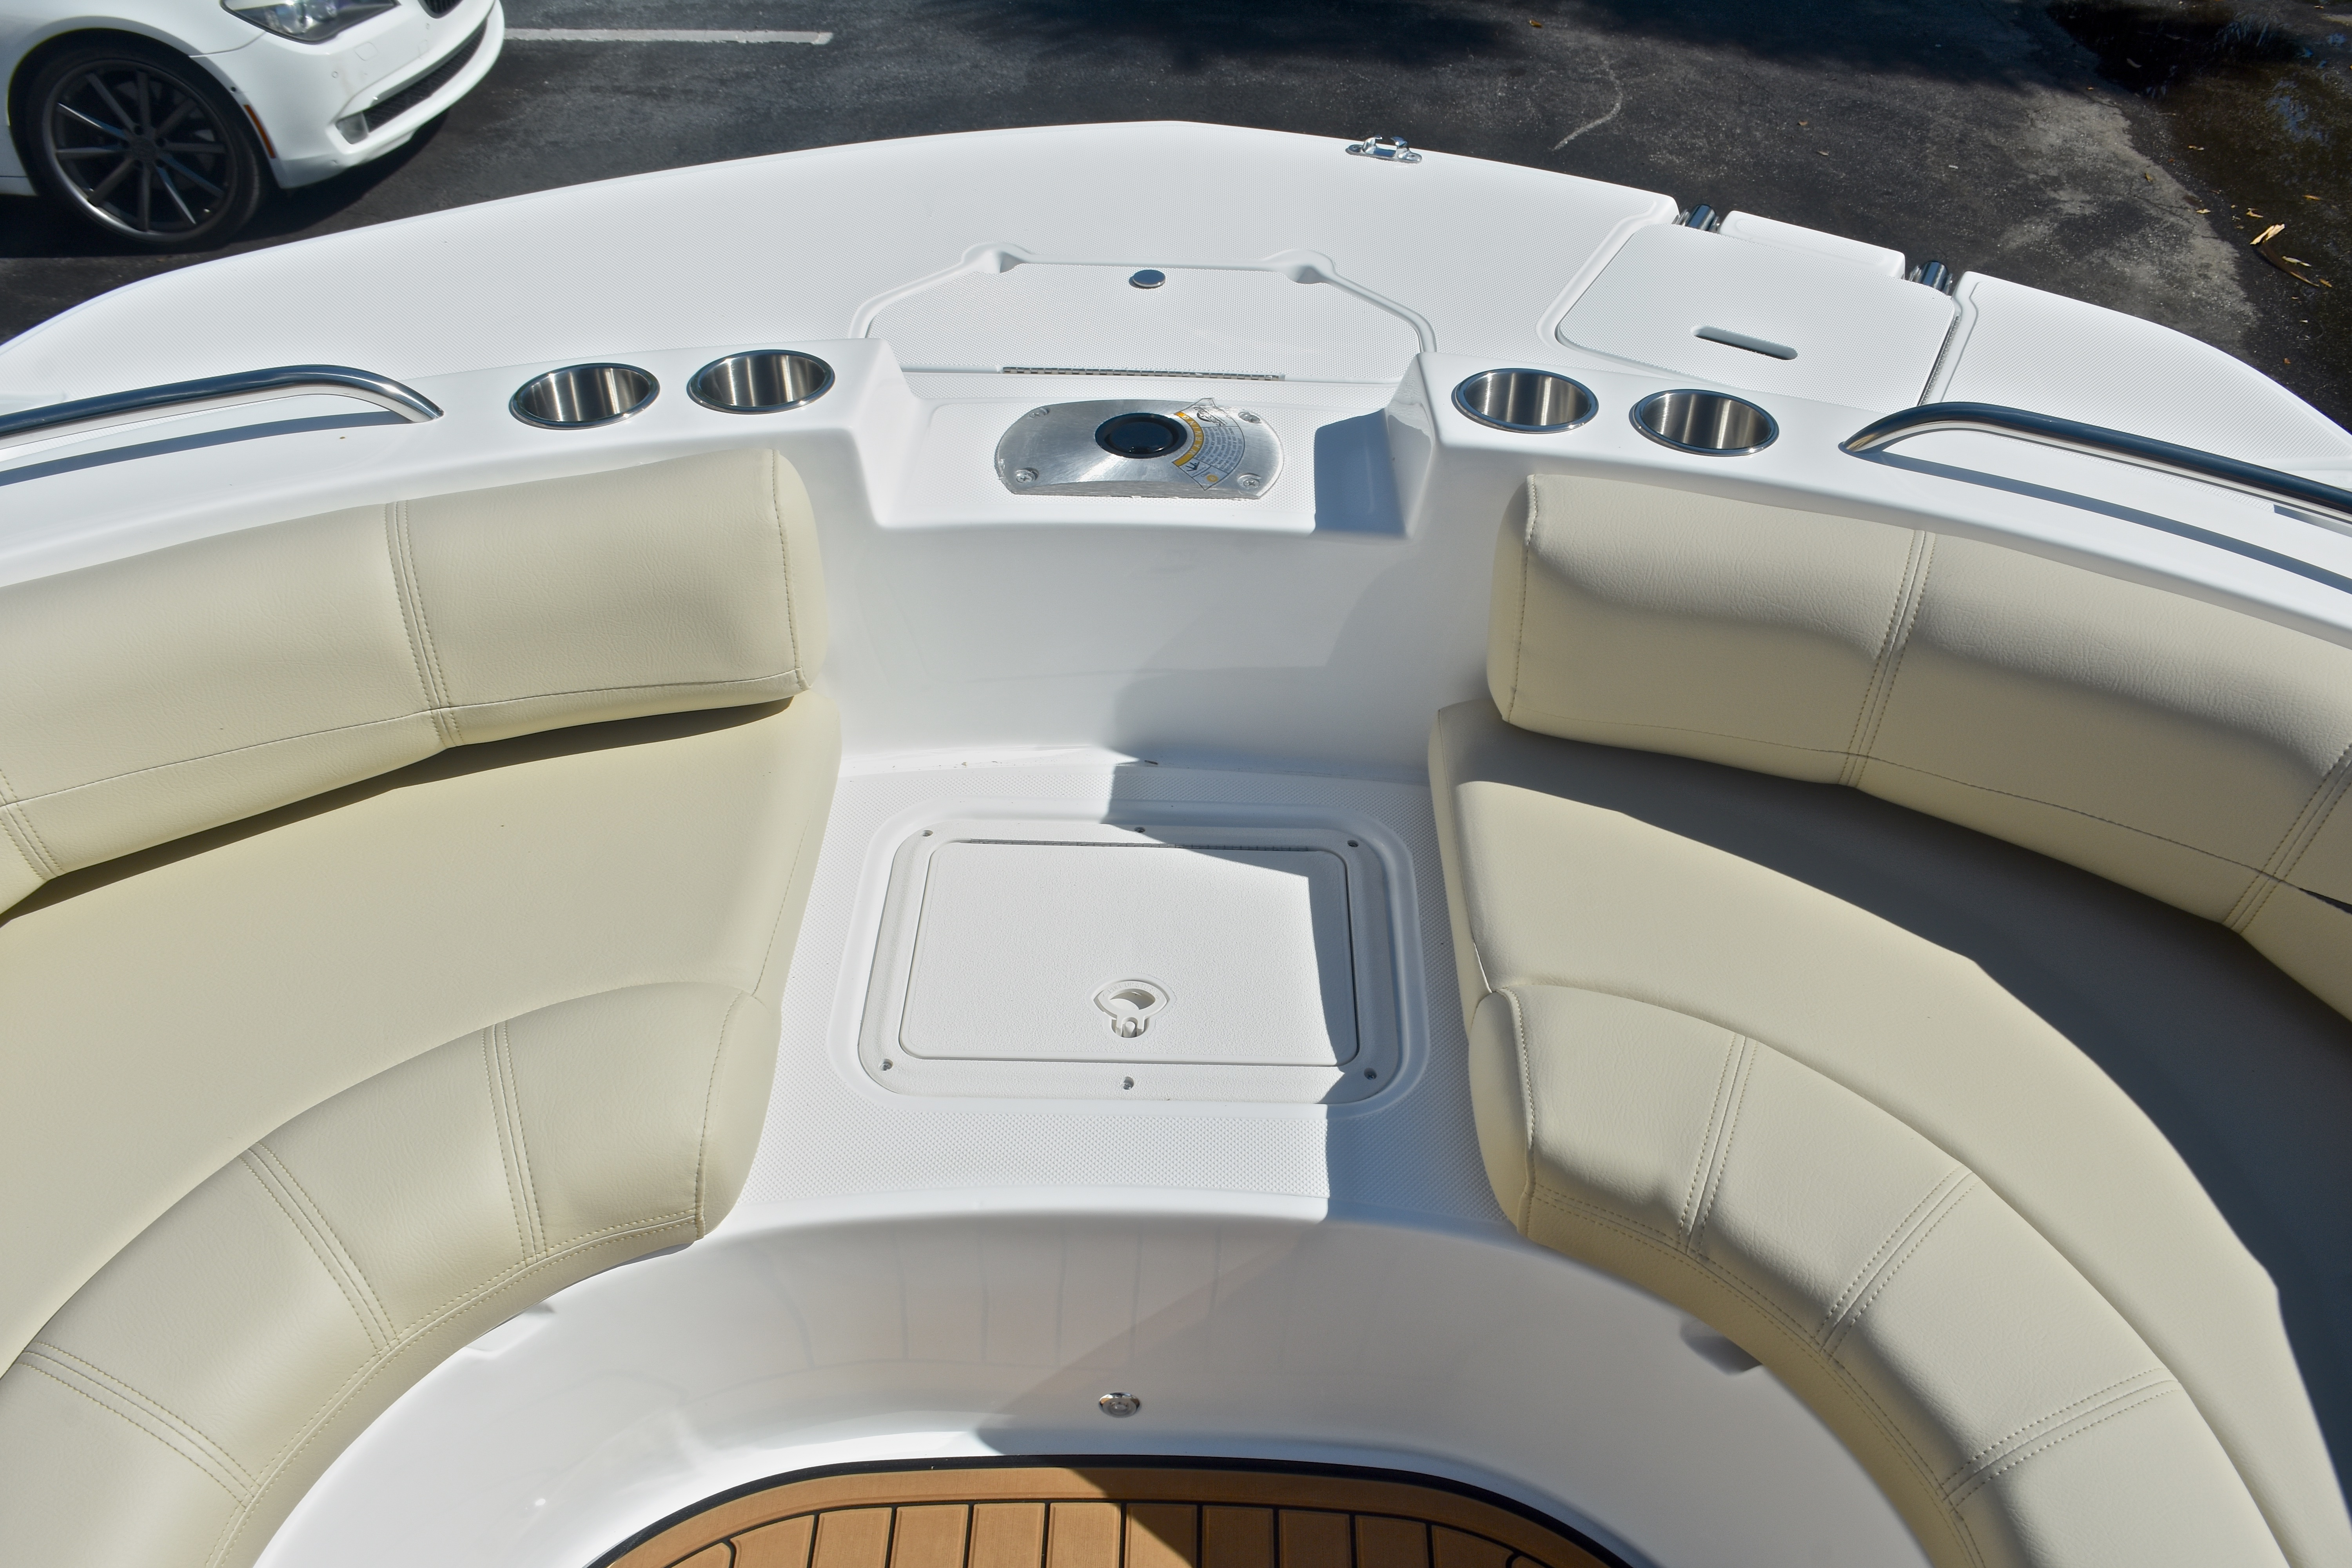 Thumbnail 43 for New 2017 Hurricane SunDeck SD 187 OB boat for sale in West Palm Beach, FL